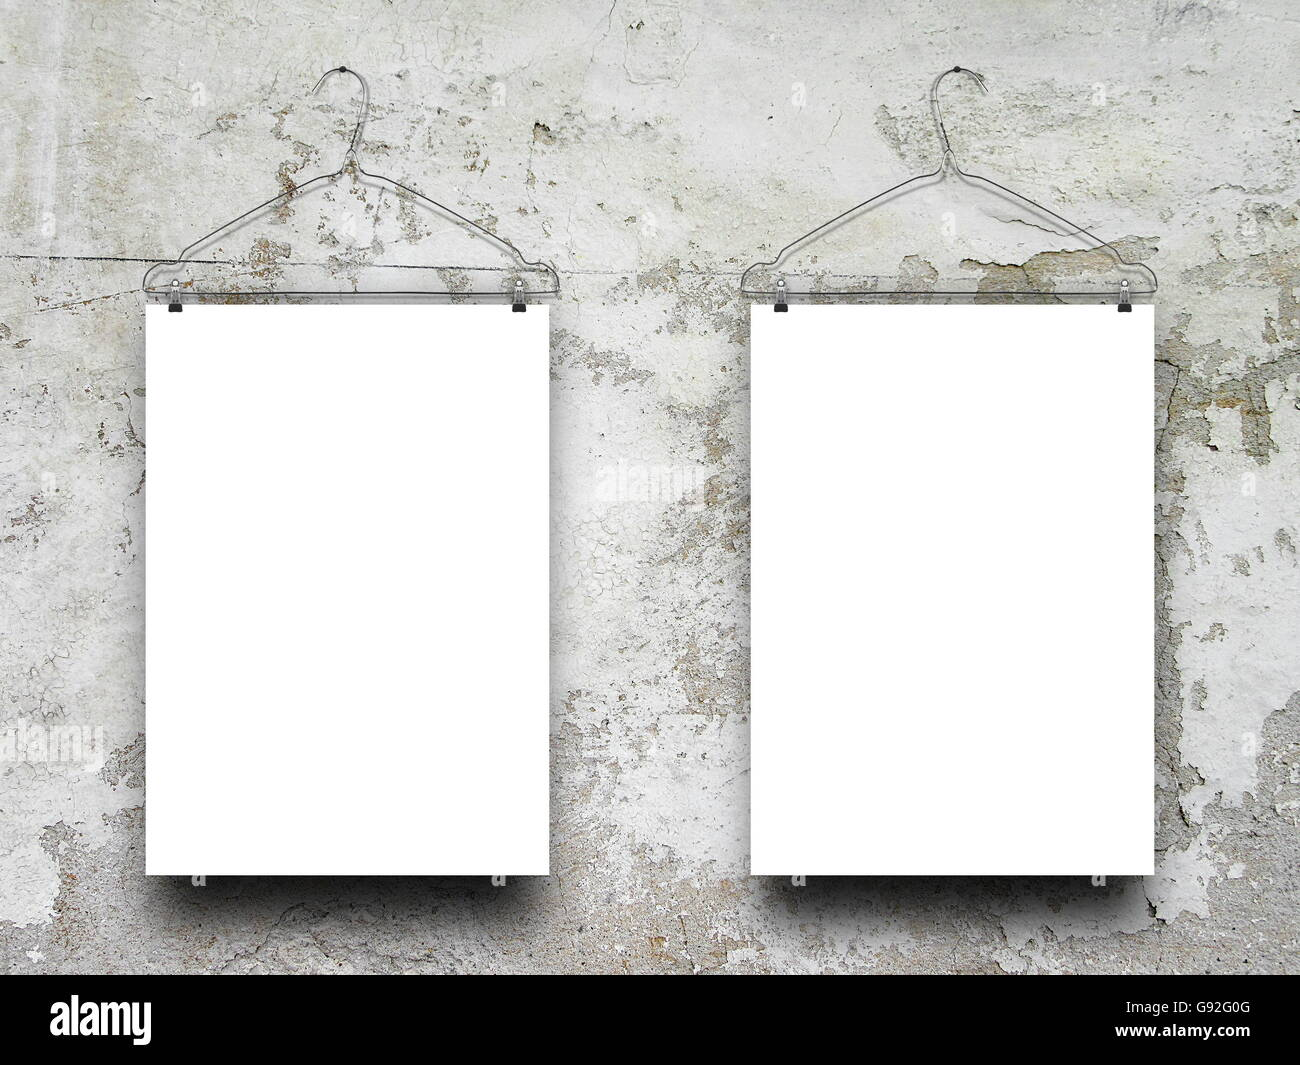 Close-up of two square blank frames hanged by clothes hanger against ...